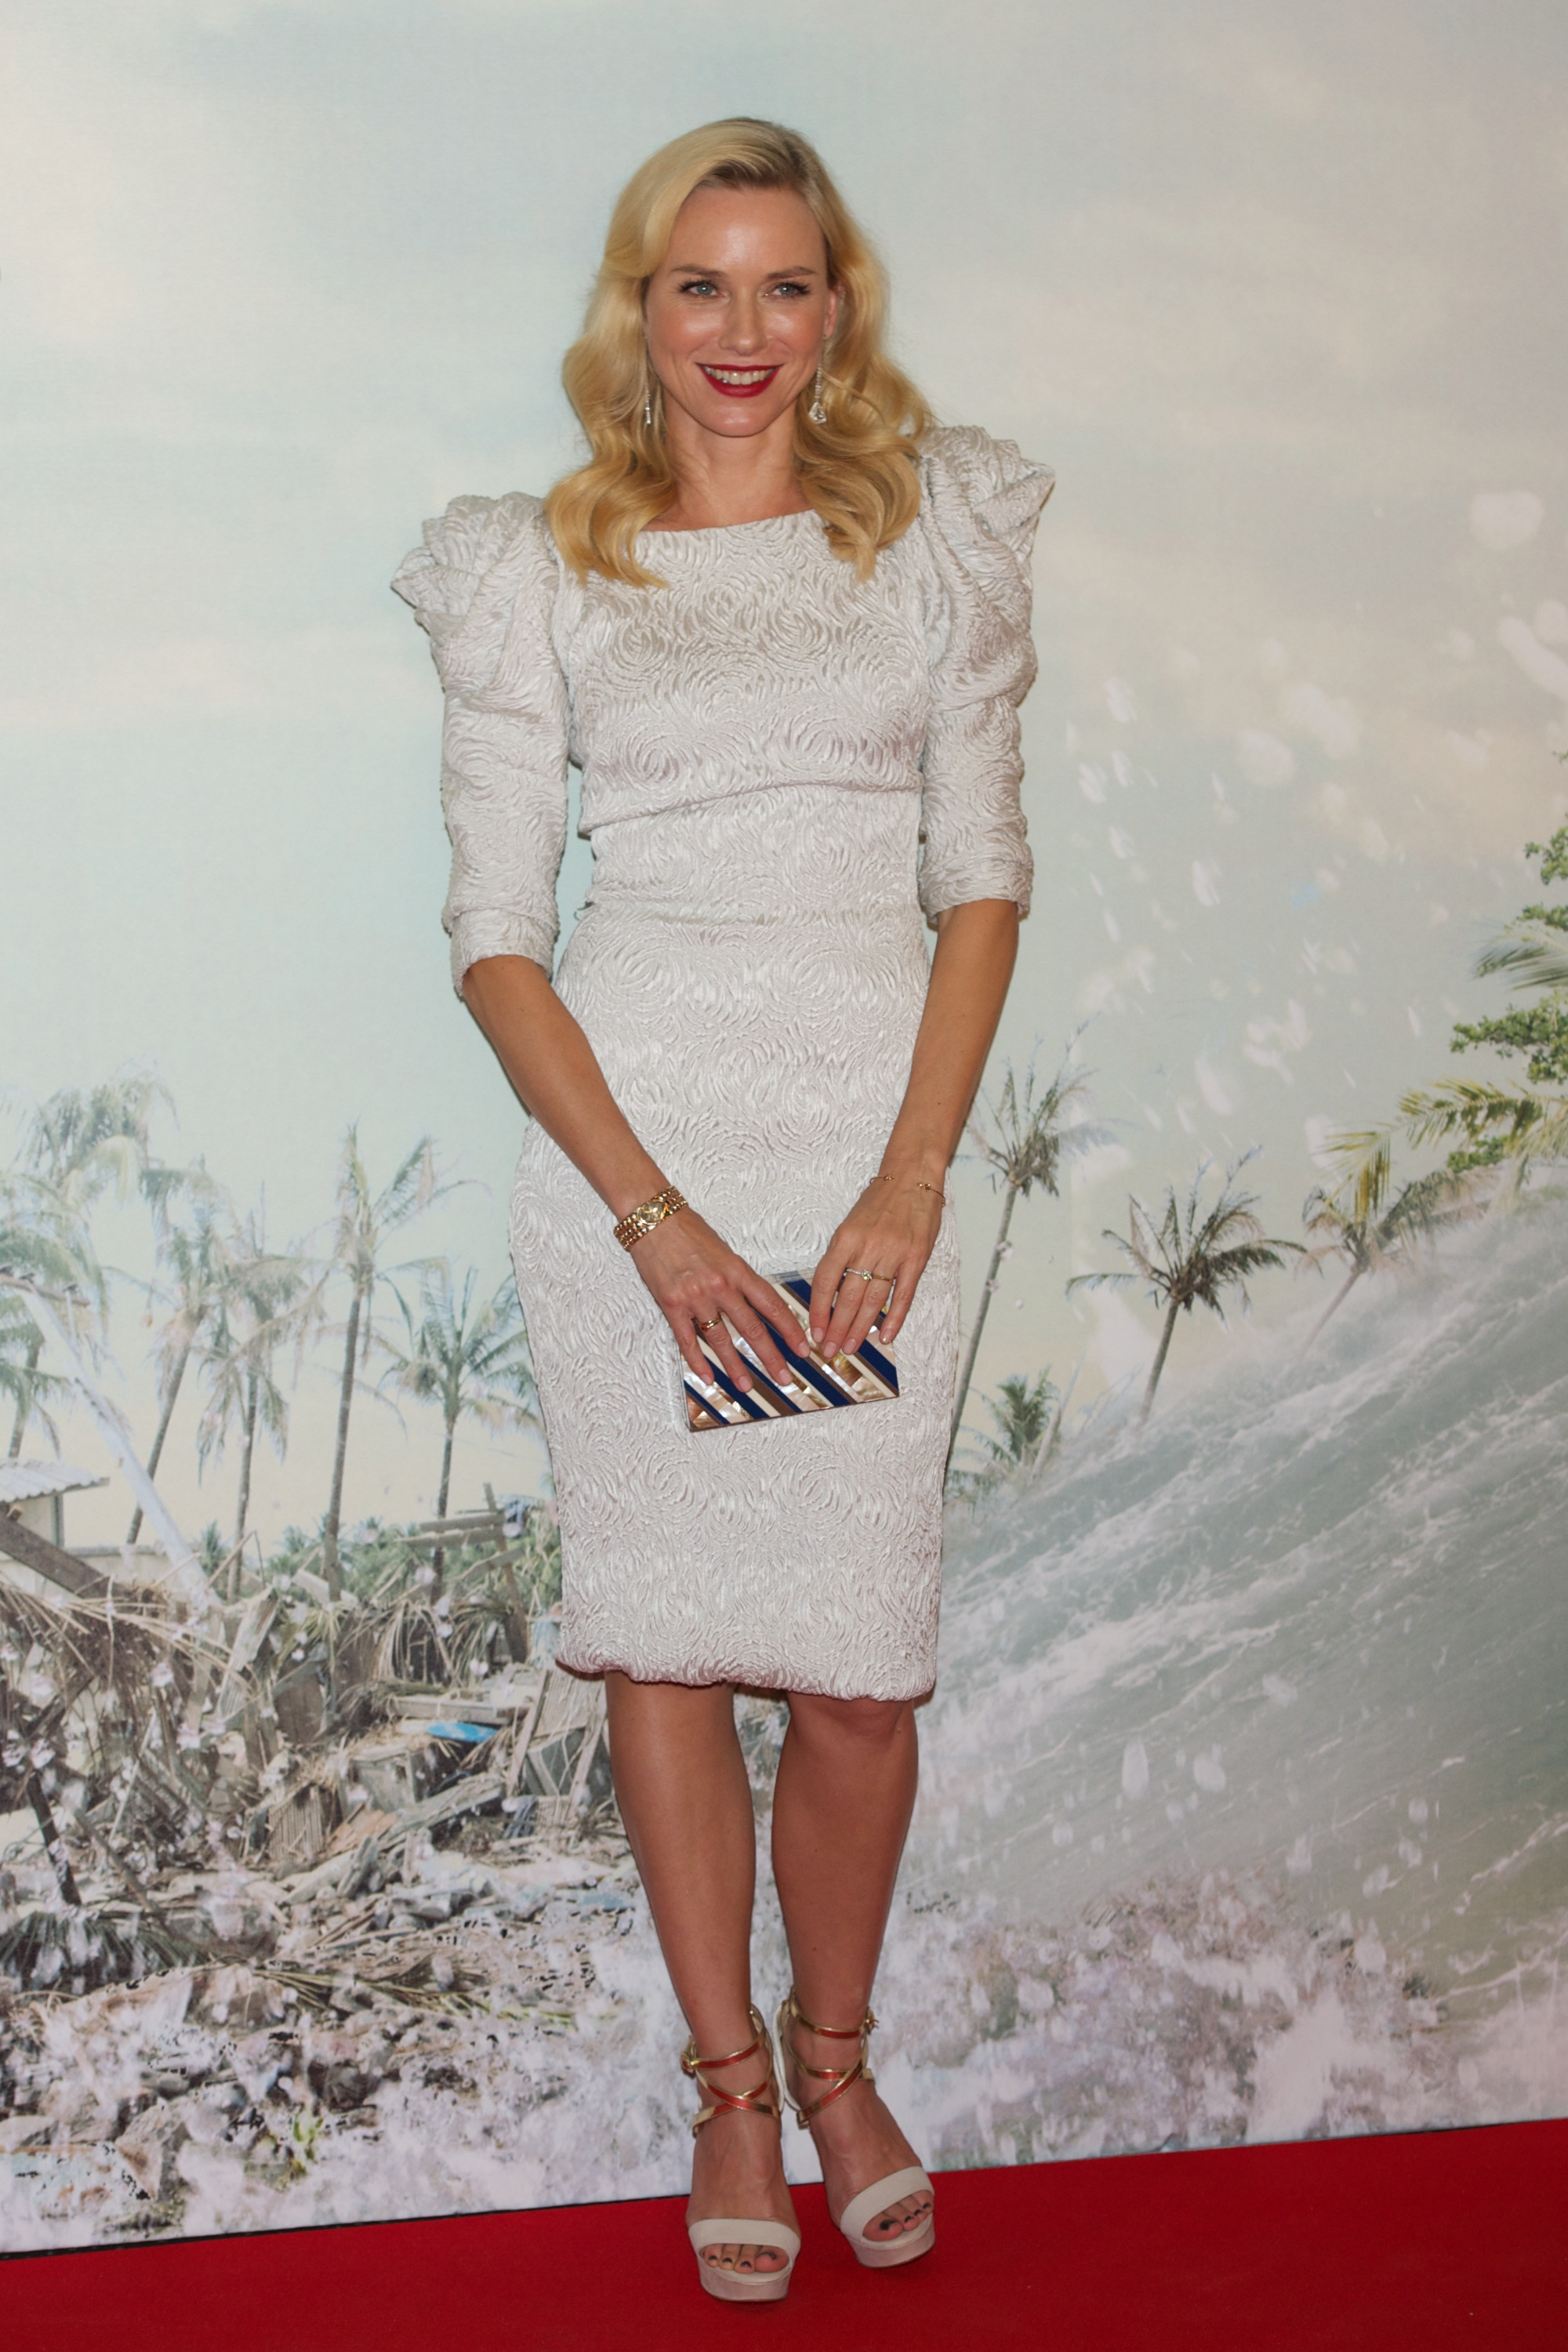 Naomi Watts chose a white dress for her red carpet premiere.